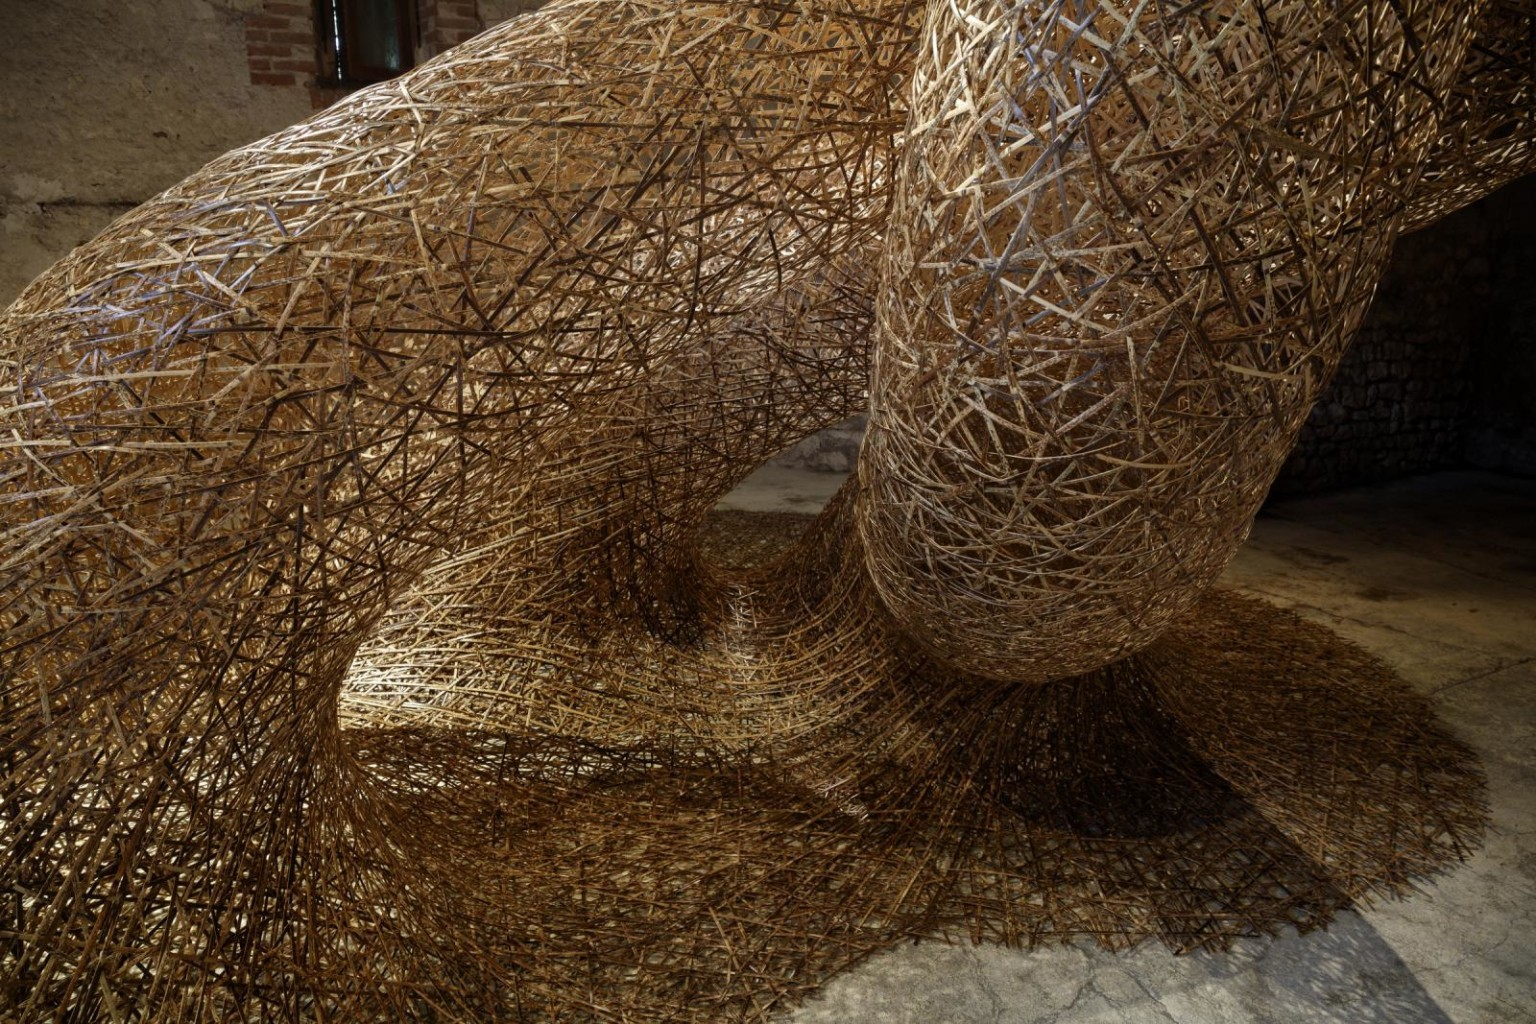 Recycled Bamboo Installations by Tanabe Chikuunsai IV